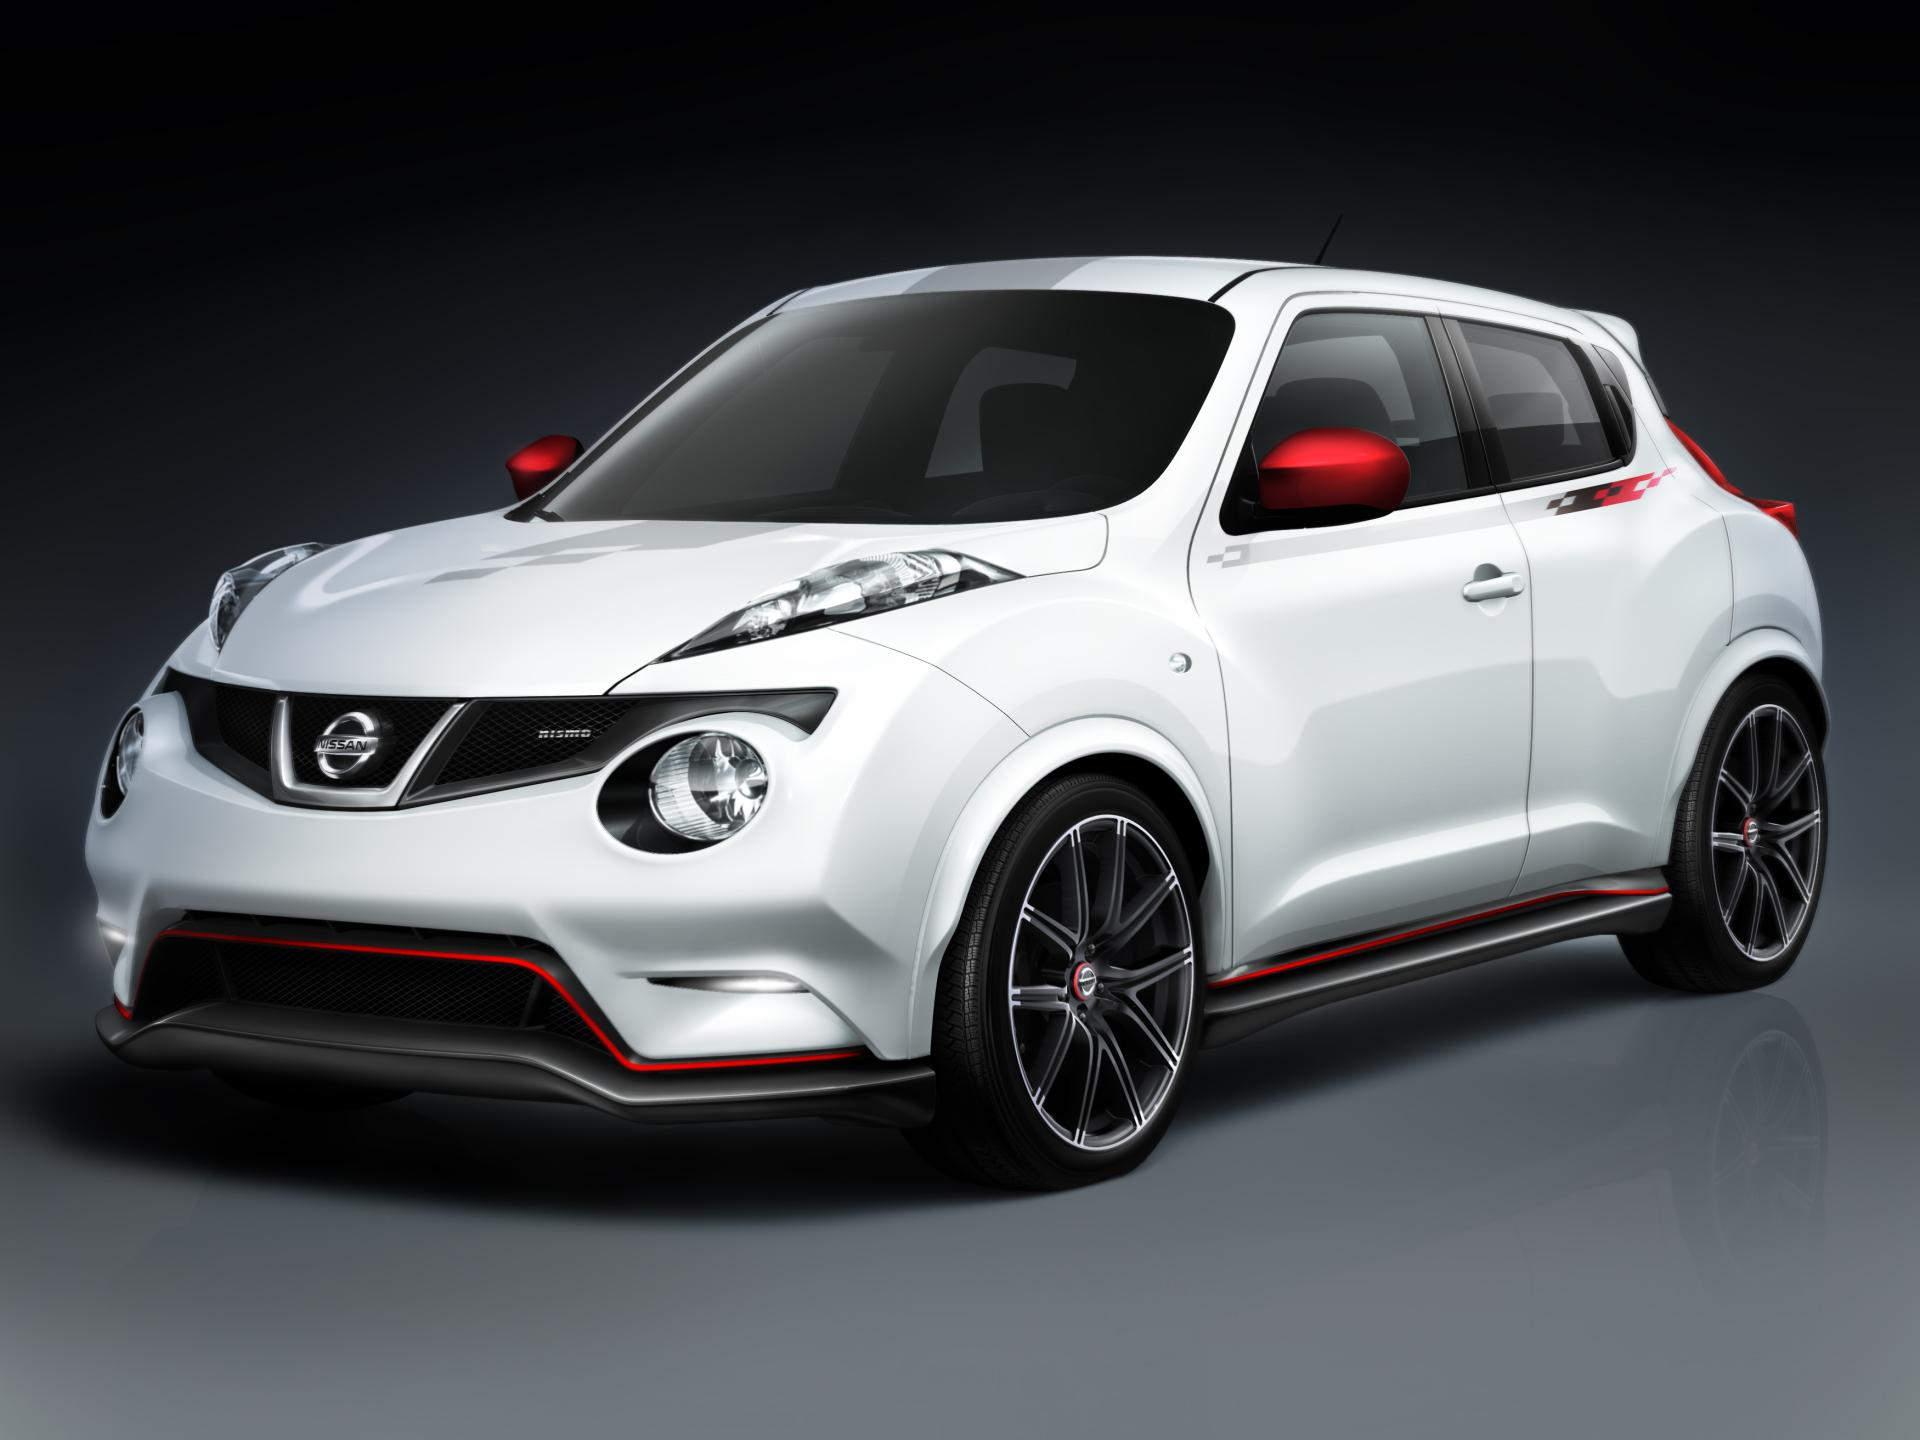 2012 nissan juke nismo concept news and information for Nissan juke dauertest